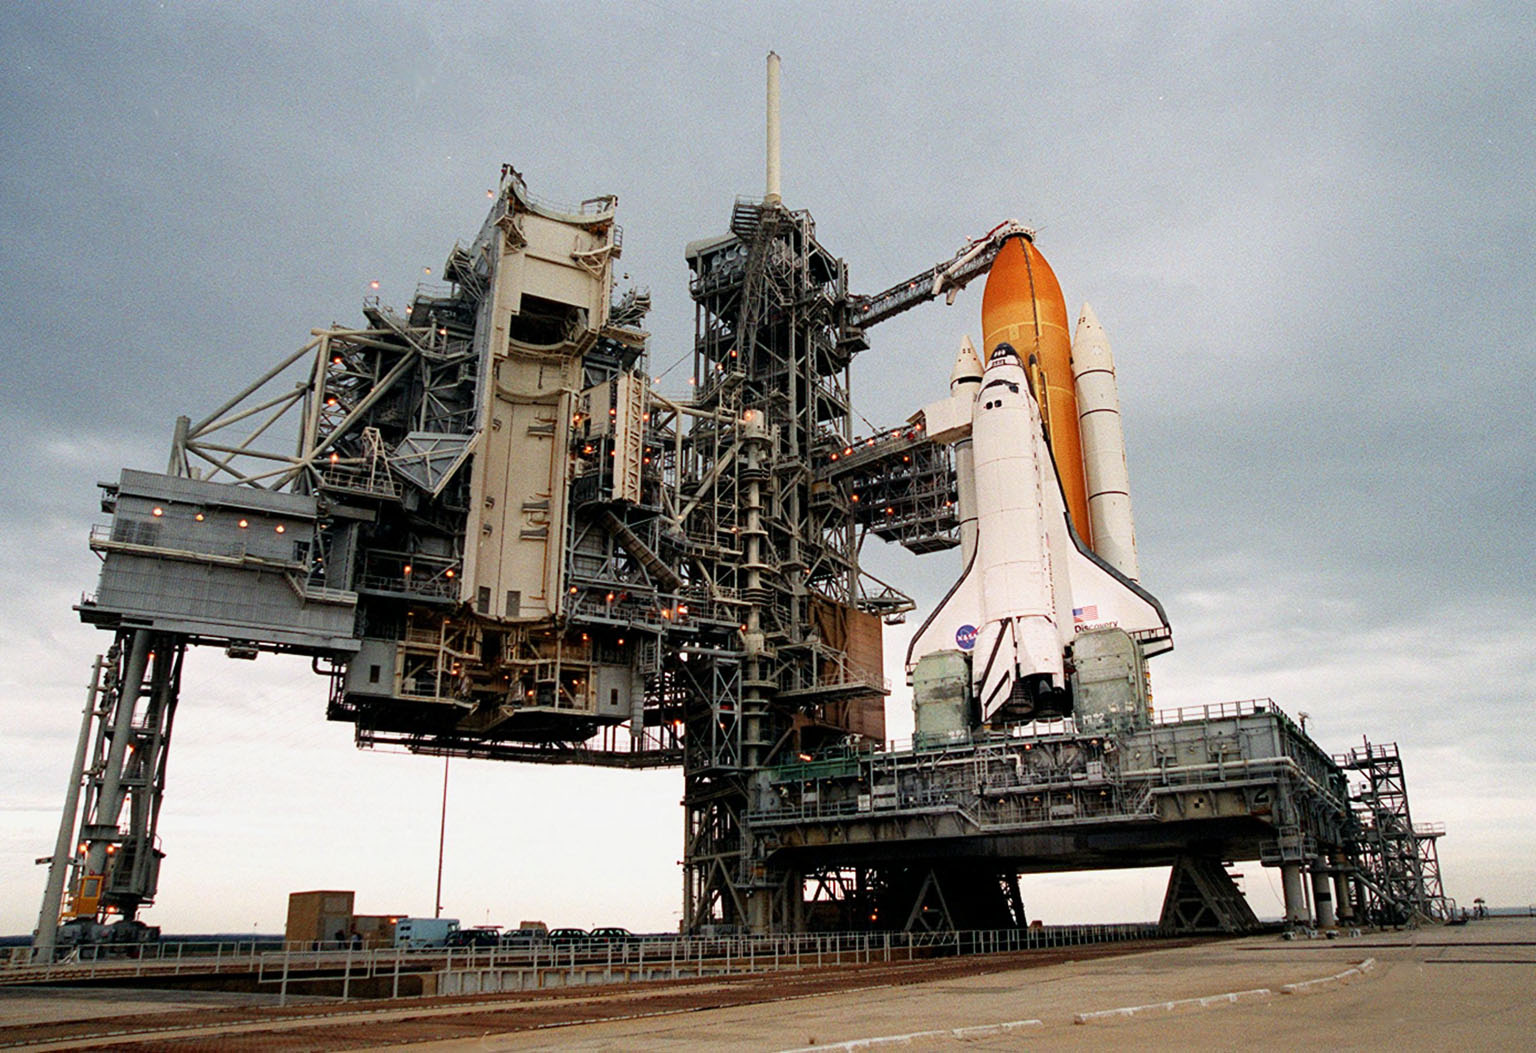 After rollback of the Rotating Service Structure at Launch Pad 39B (left) before dawn, the Space Shuttle Discovery is revealed poised for flight on mission STS-103. The rollback of the structure was complete at 4:46 a.m. EST. STS-103 is scheduled for launch Dec. 16 at 9:18 p.m. EST. The mission is expected to last about 9 days and 21 hours with a landing at KSC Sunday, Dec. 26, at 6:56 p.m. EST